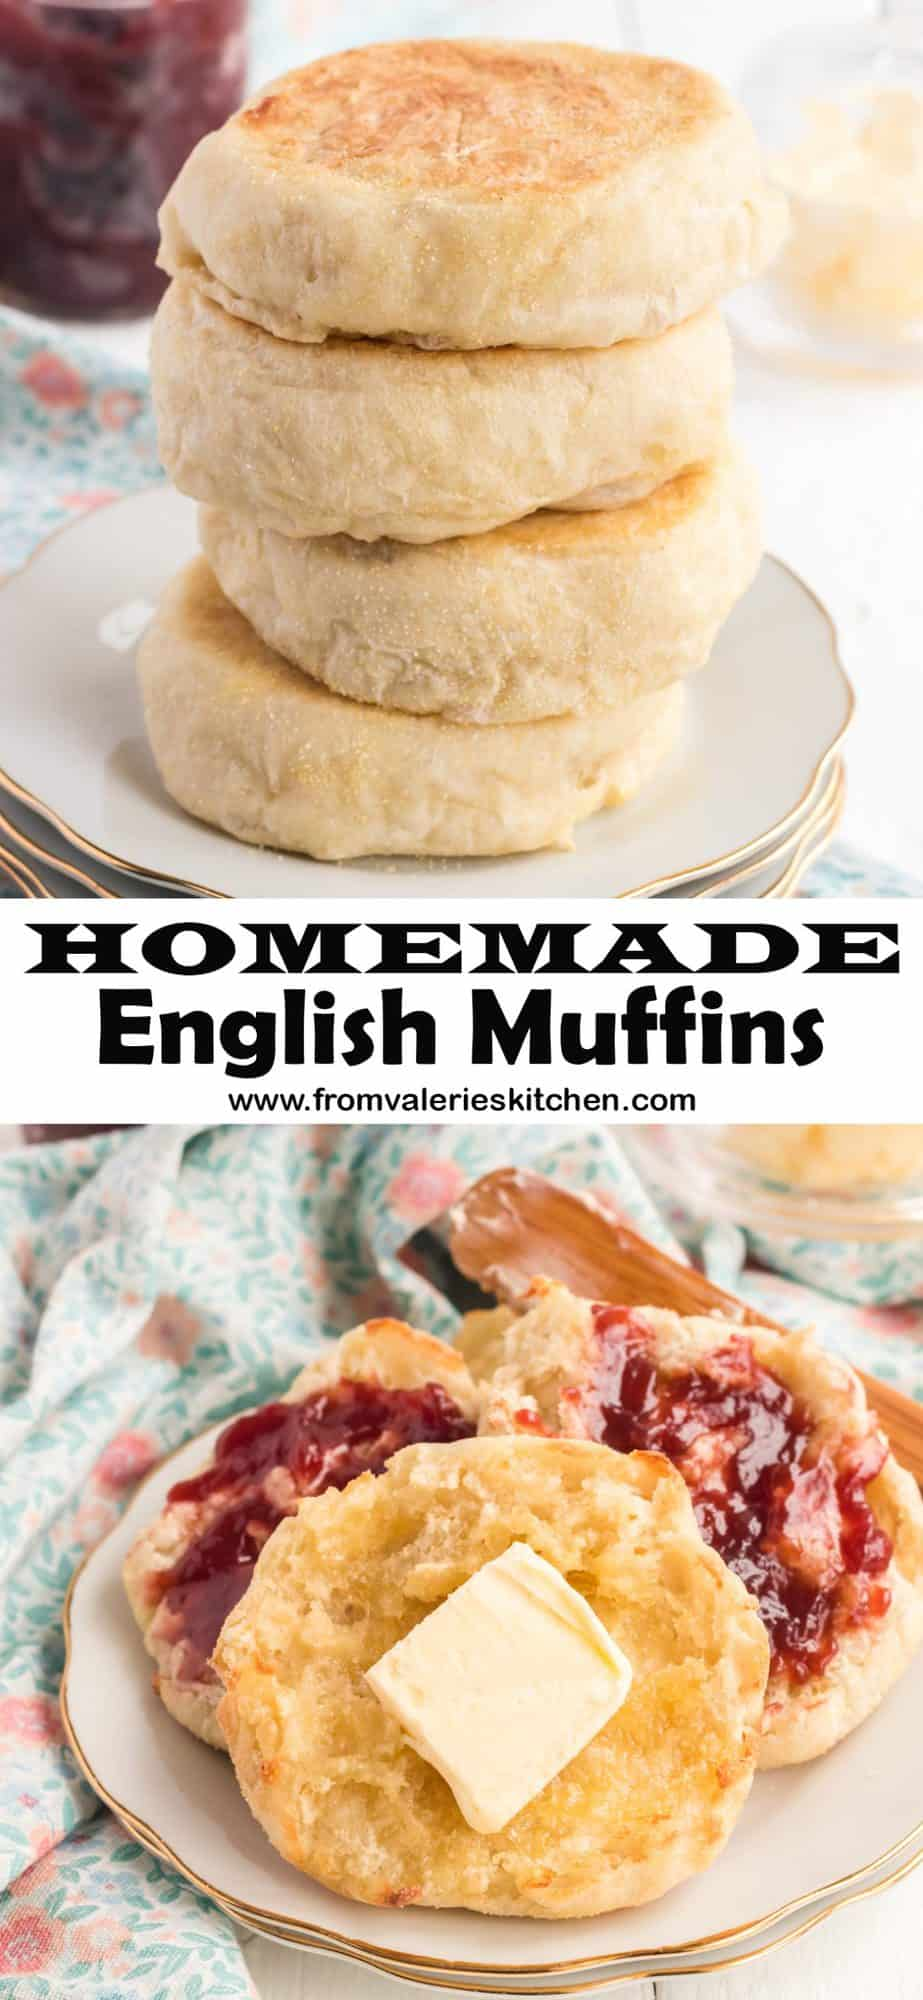 A two image vertical collage of Homemade English Muffins with overlay text